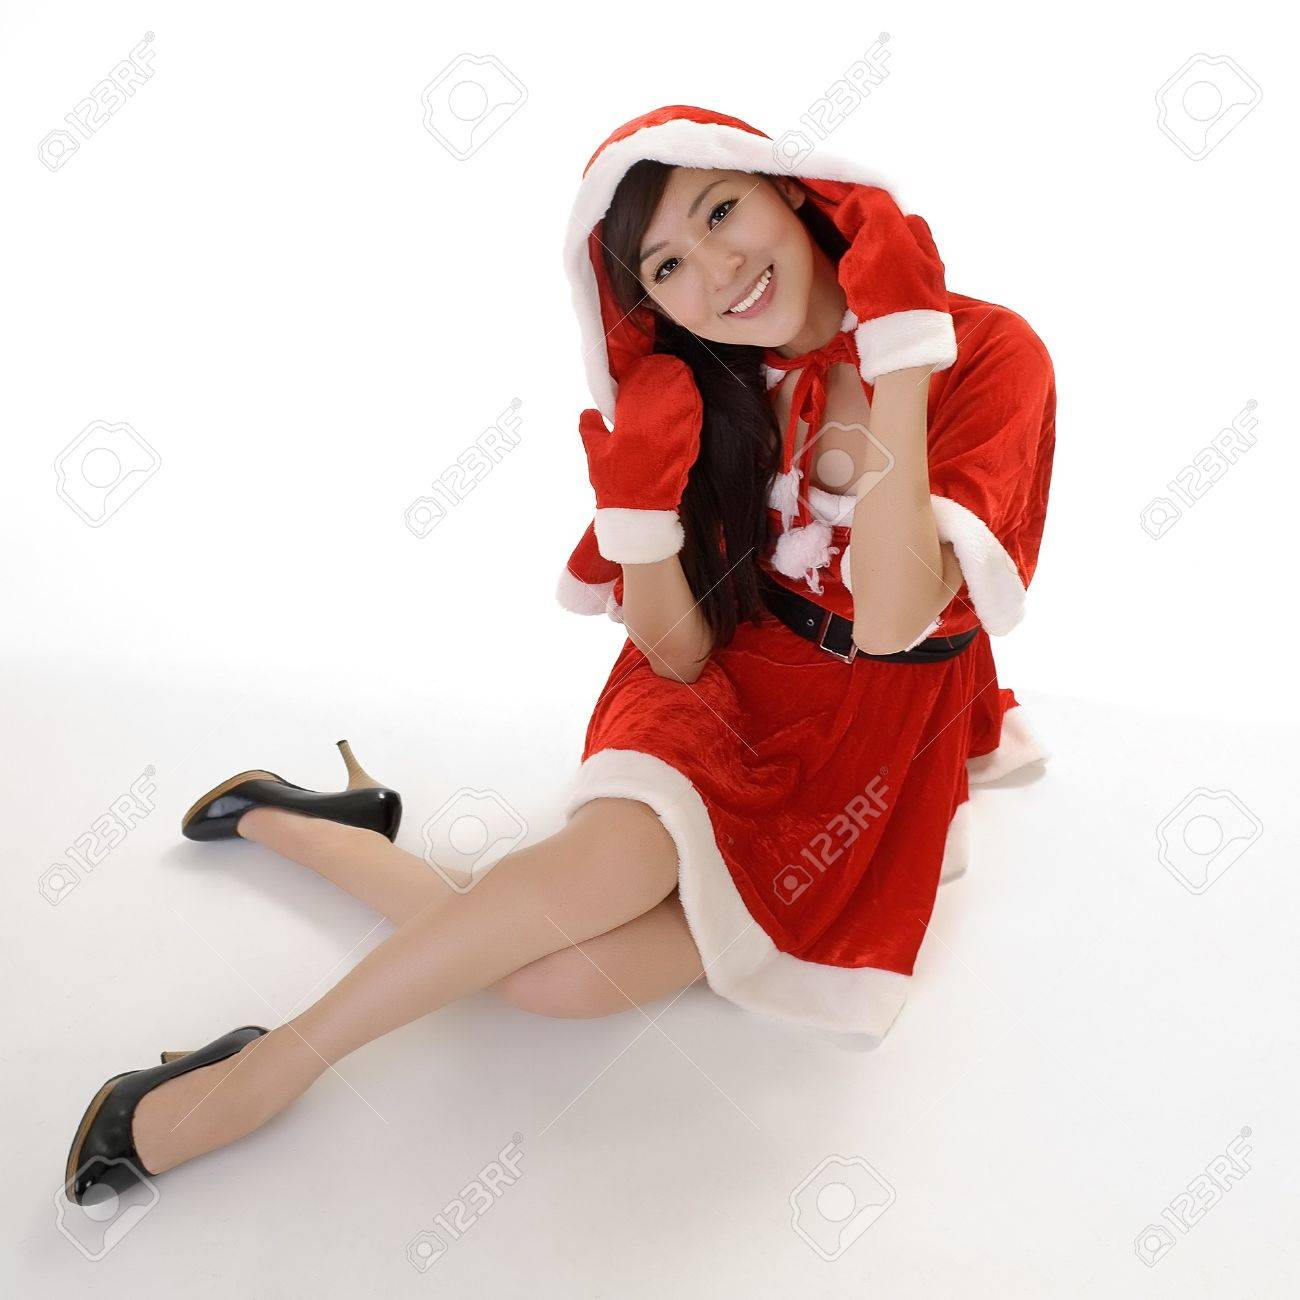 Attractive Christmas beauty sit on studio white ground with smiling expression. Stock Photo - 7943404